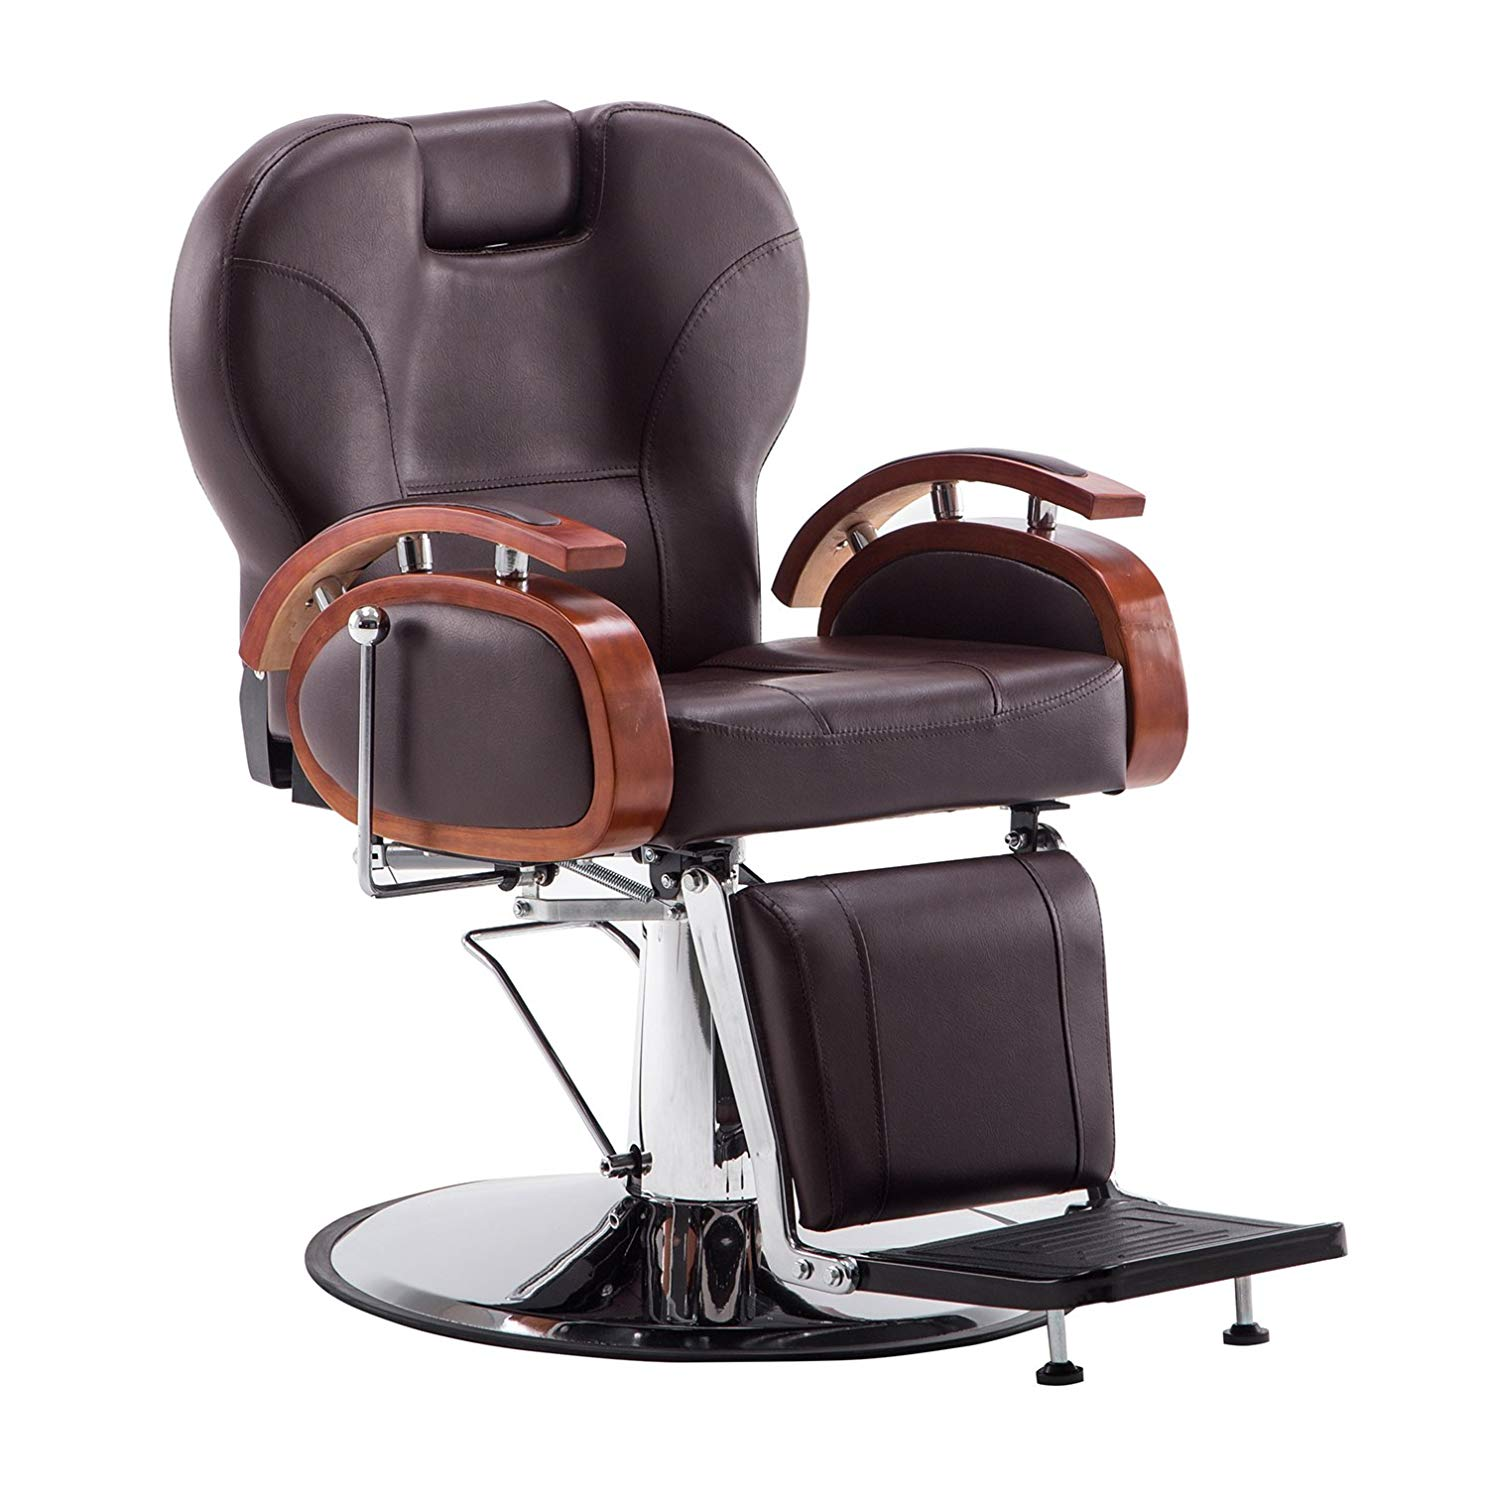 Exacme Hydraulic Recline Barber Chair, 8705